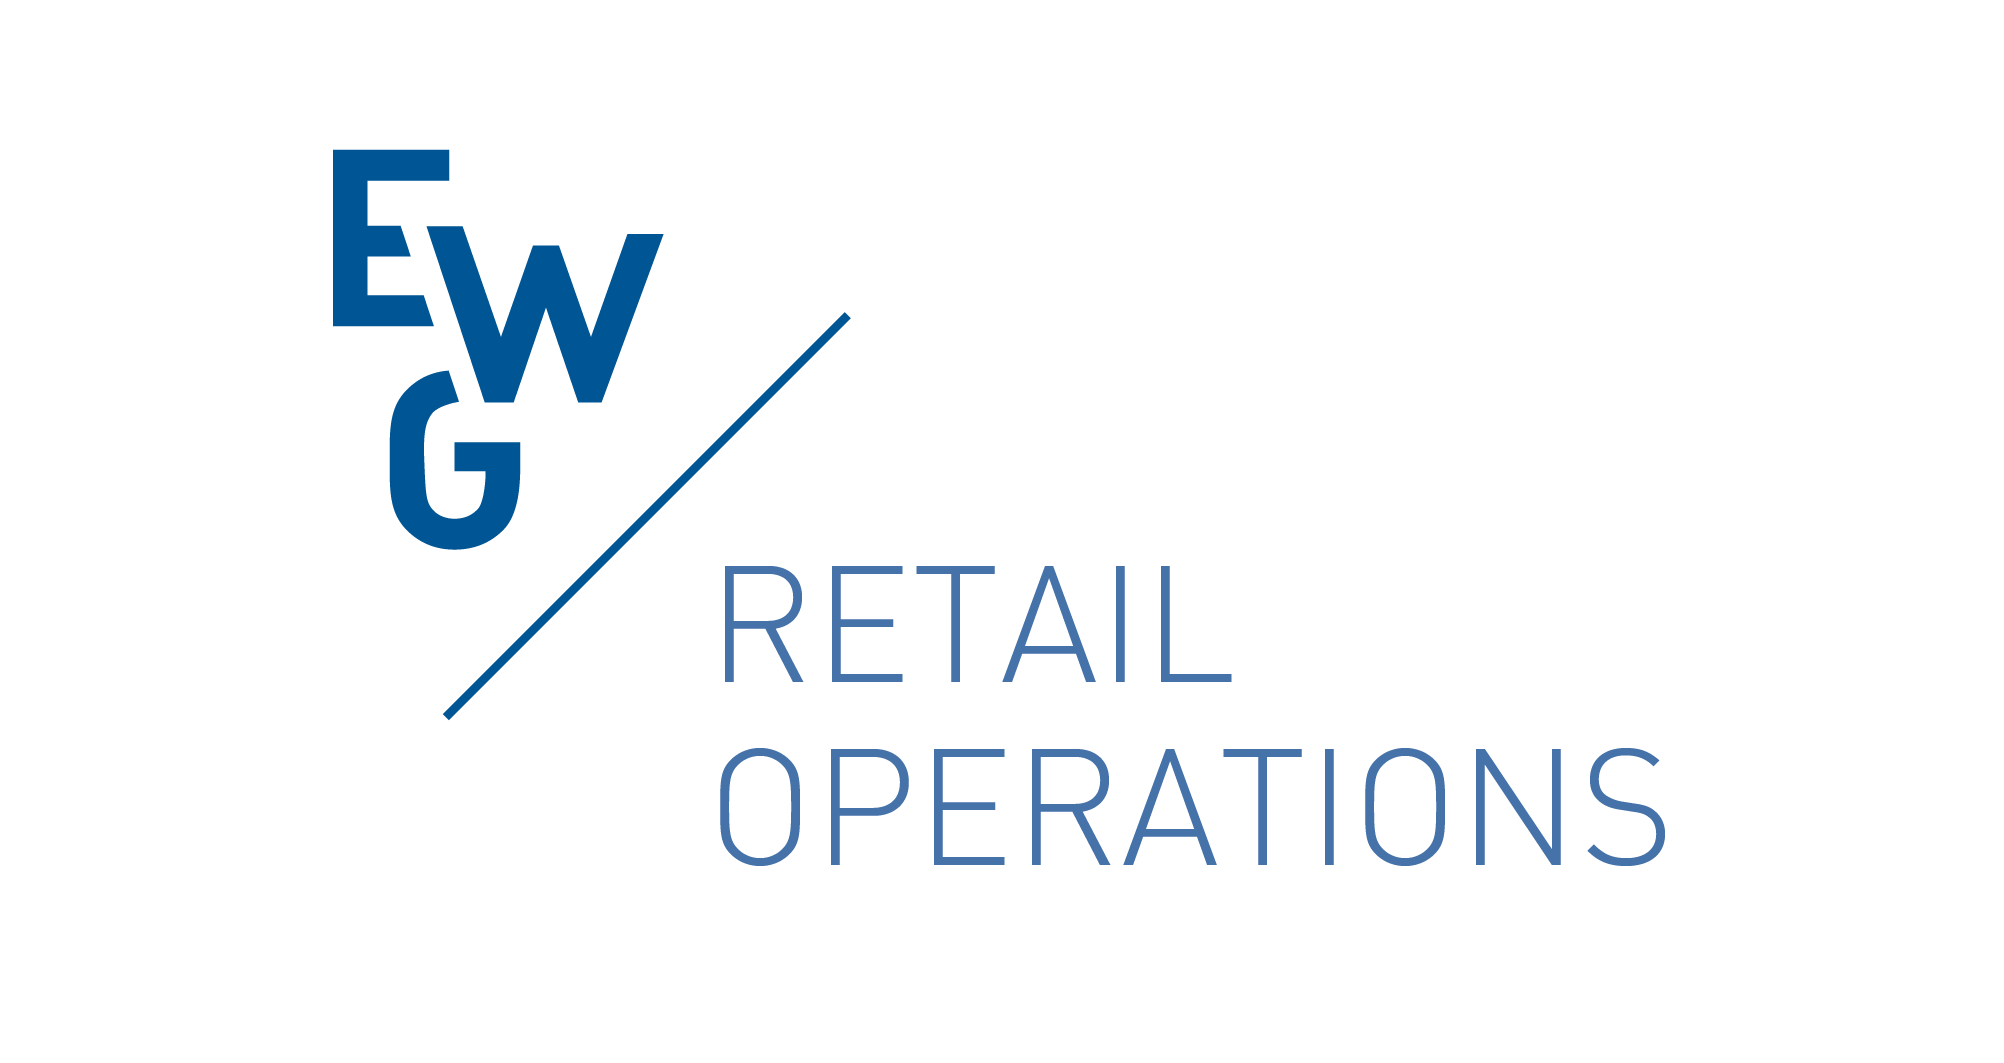 EURO working group on Retail Operations